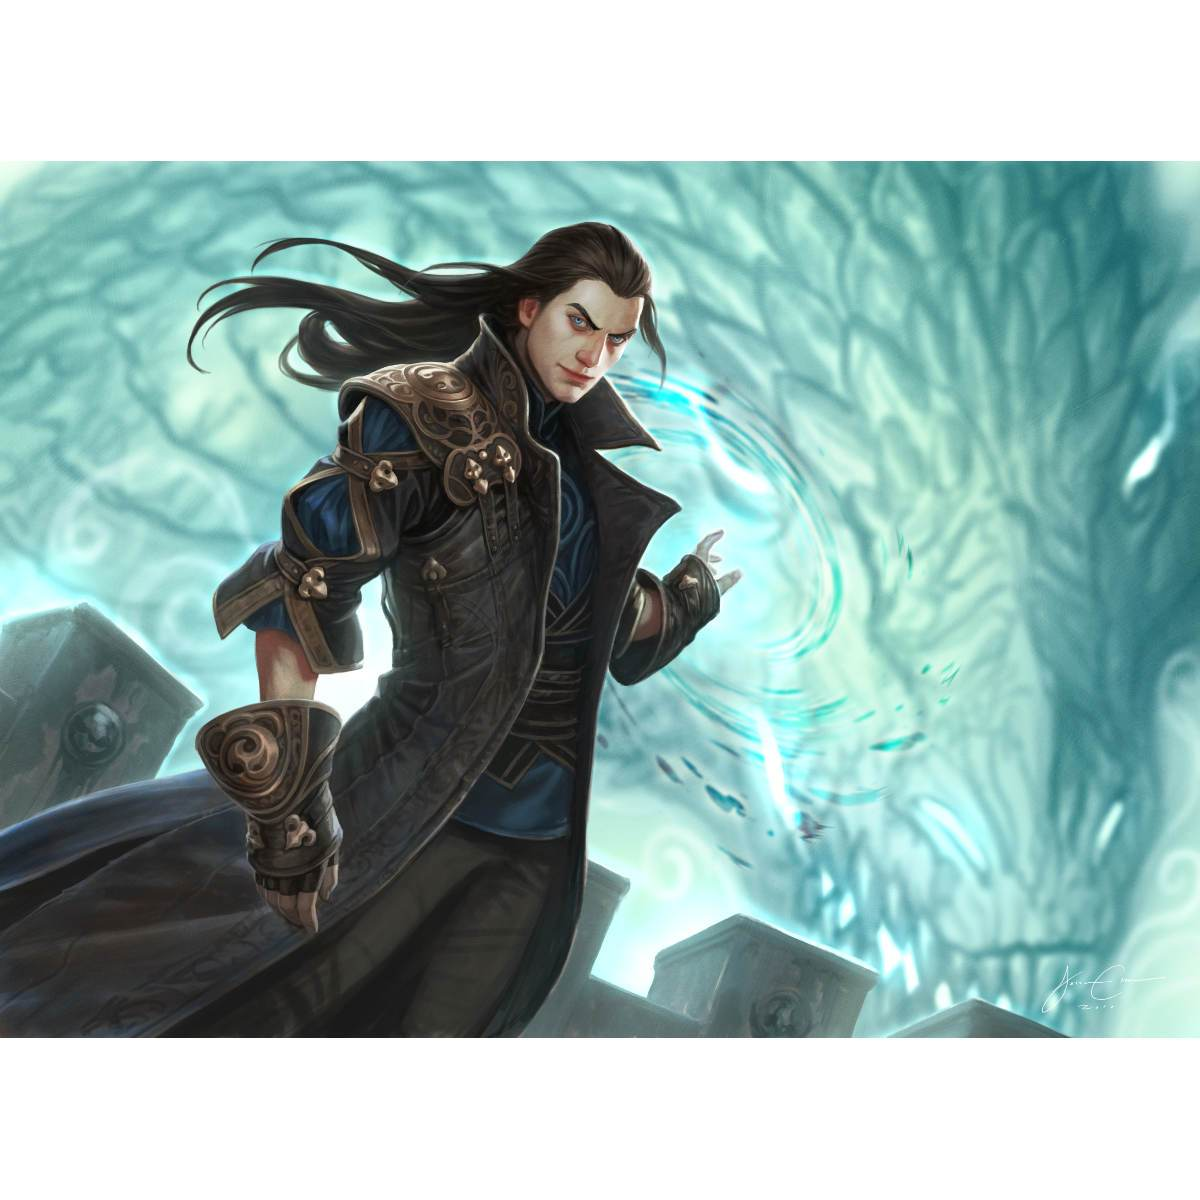 Lord of the Unreal Print - Print - Original Magic Art - Accessories for Magic the Gathering and other card games